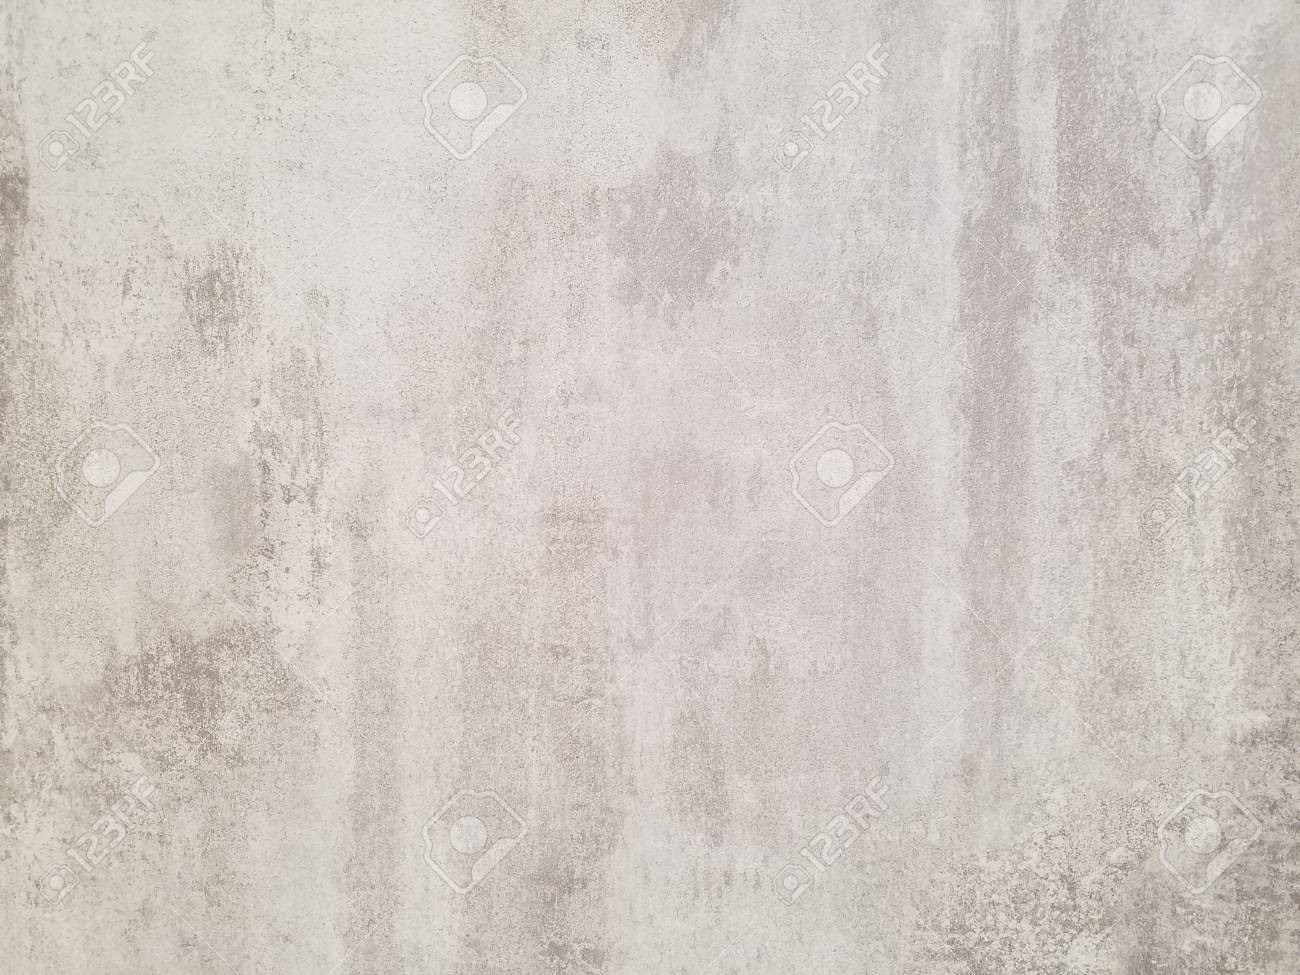 Urban Beton Texture Grunge Cement Background For Your Design Stock Photo Picture And Royalty Free Image Image 88175306